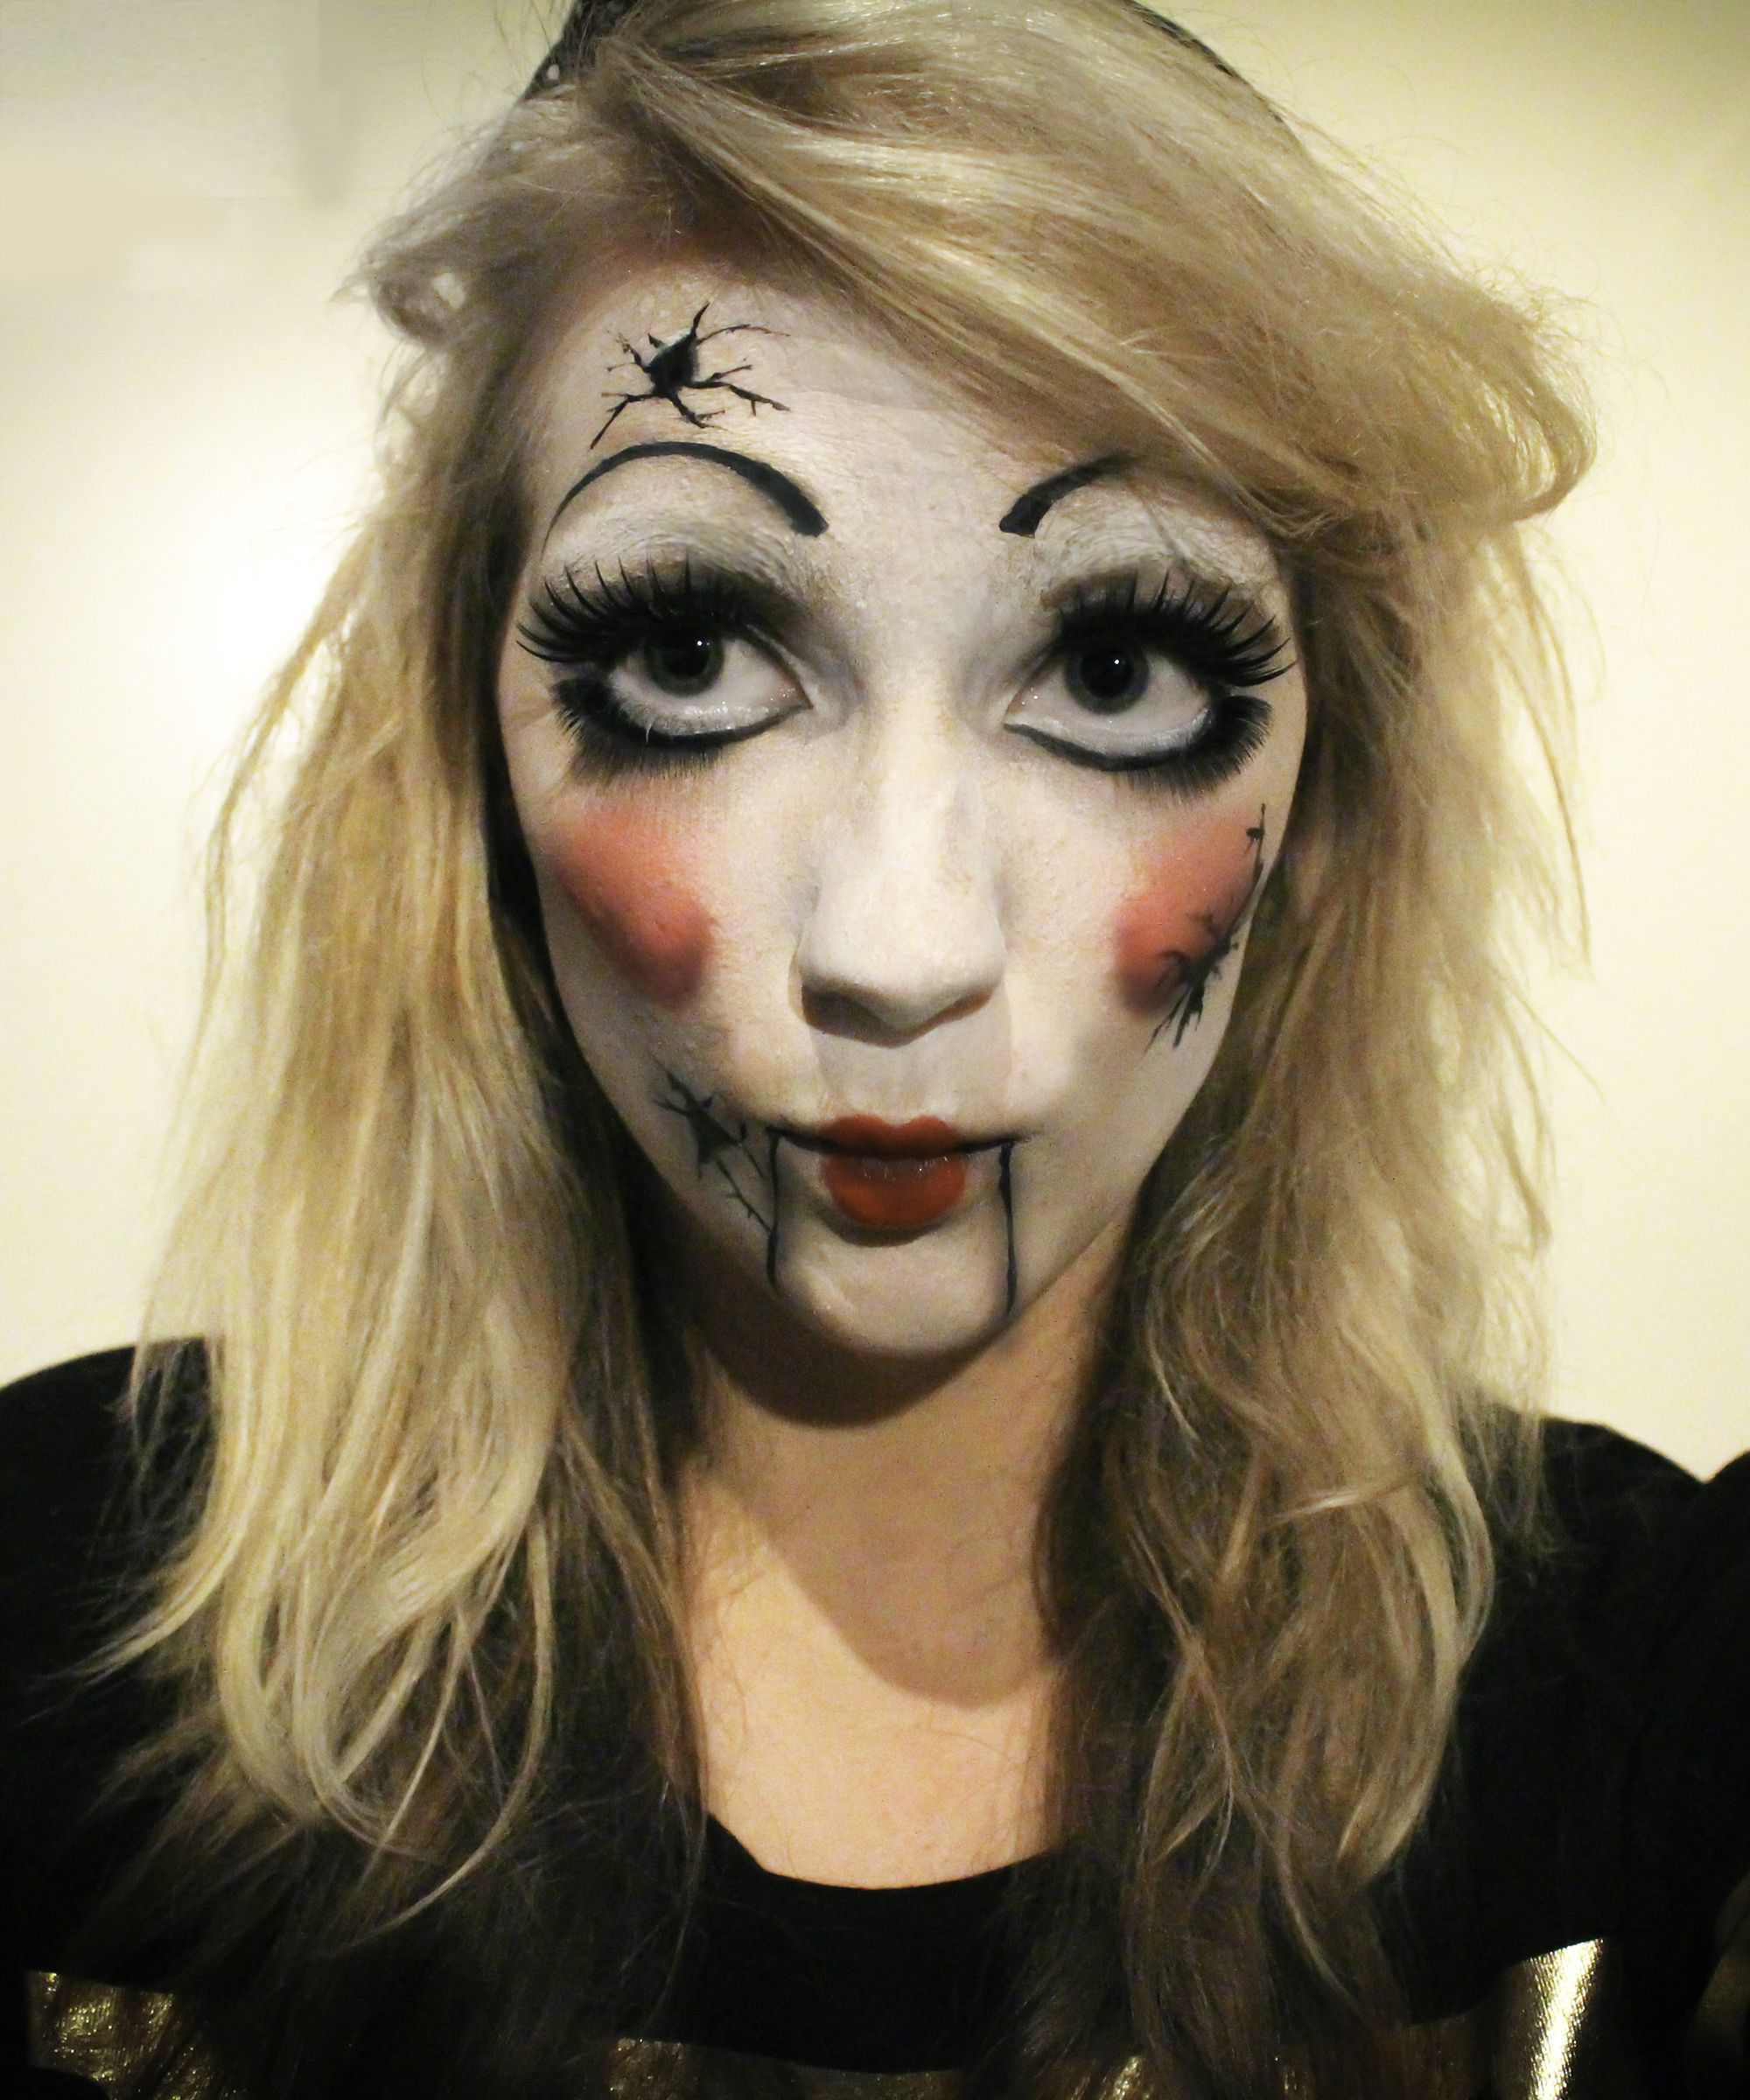 cracked porcelain doll facepaint | makeup - my work | pinterest | makeup